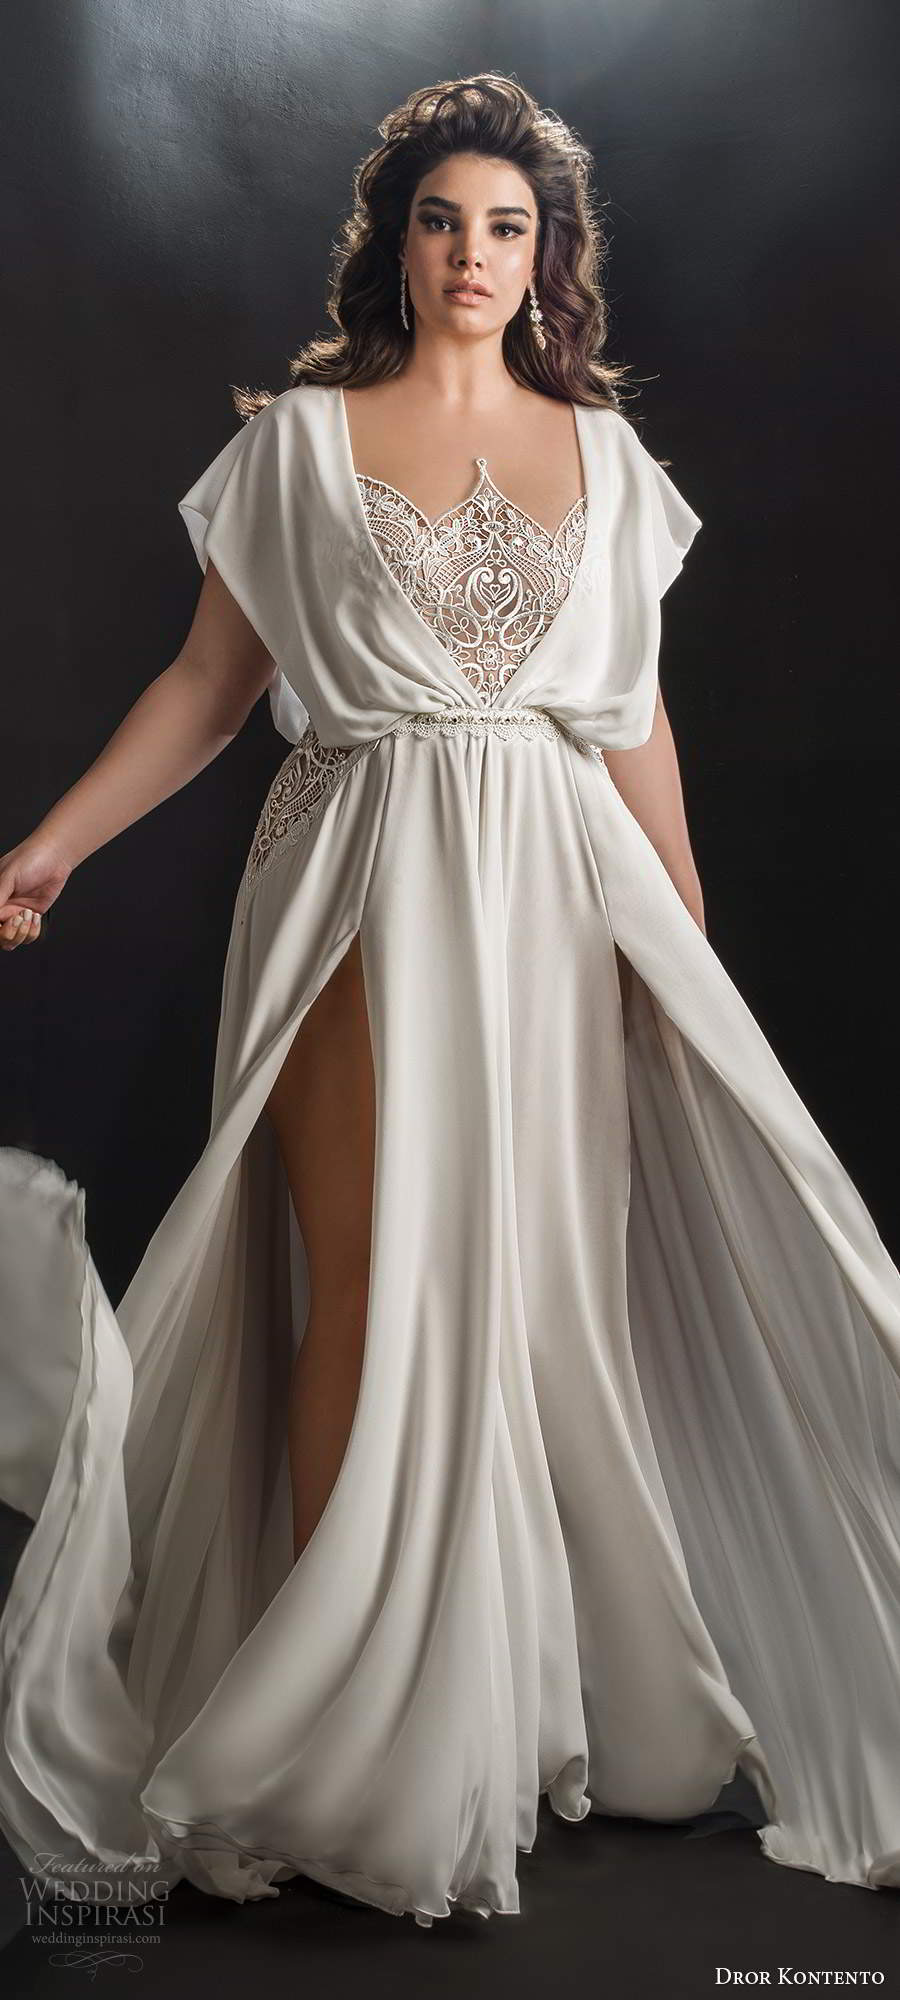 dror kontento 2019 bridal kaftan sleeve scalloped neckline lace bodice double slit skirt a line wedding dress sweep train (6) mv